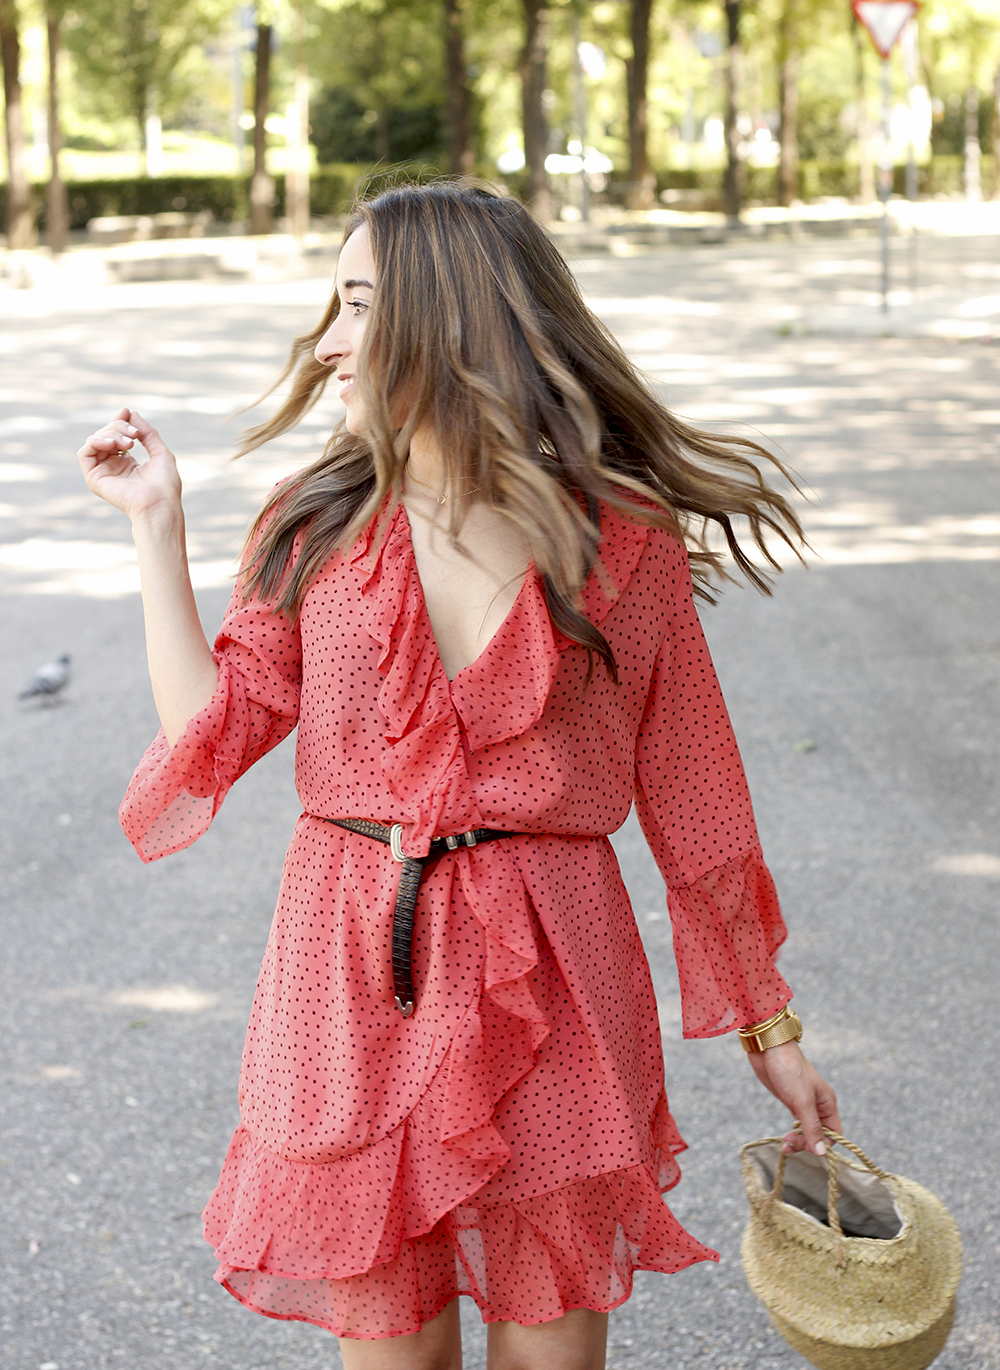 coral dress with dots and frills uterqüe black heels summer outfit style fashion06